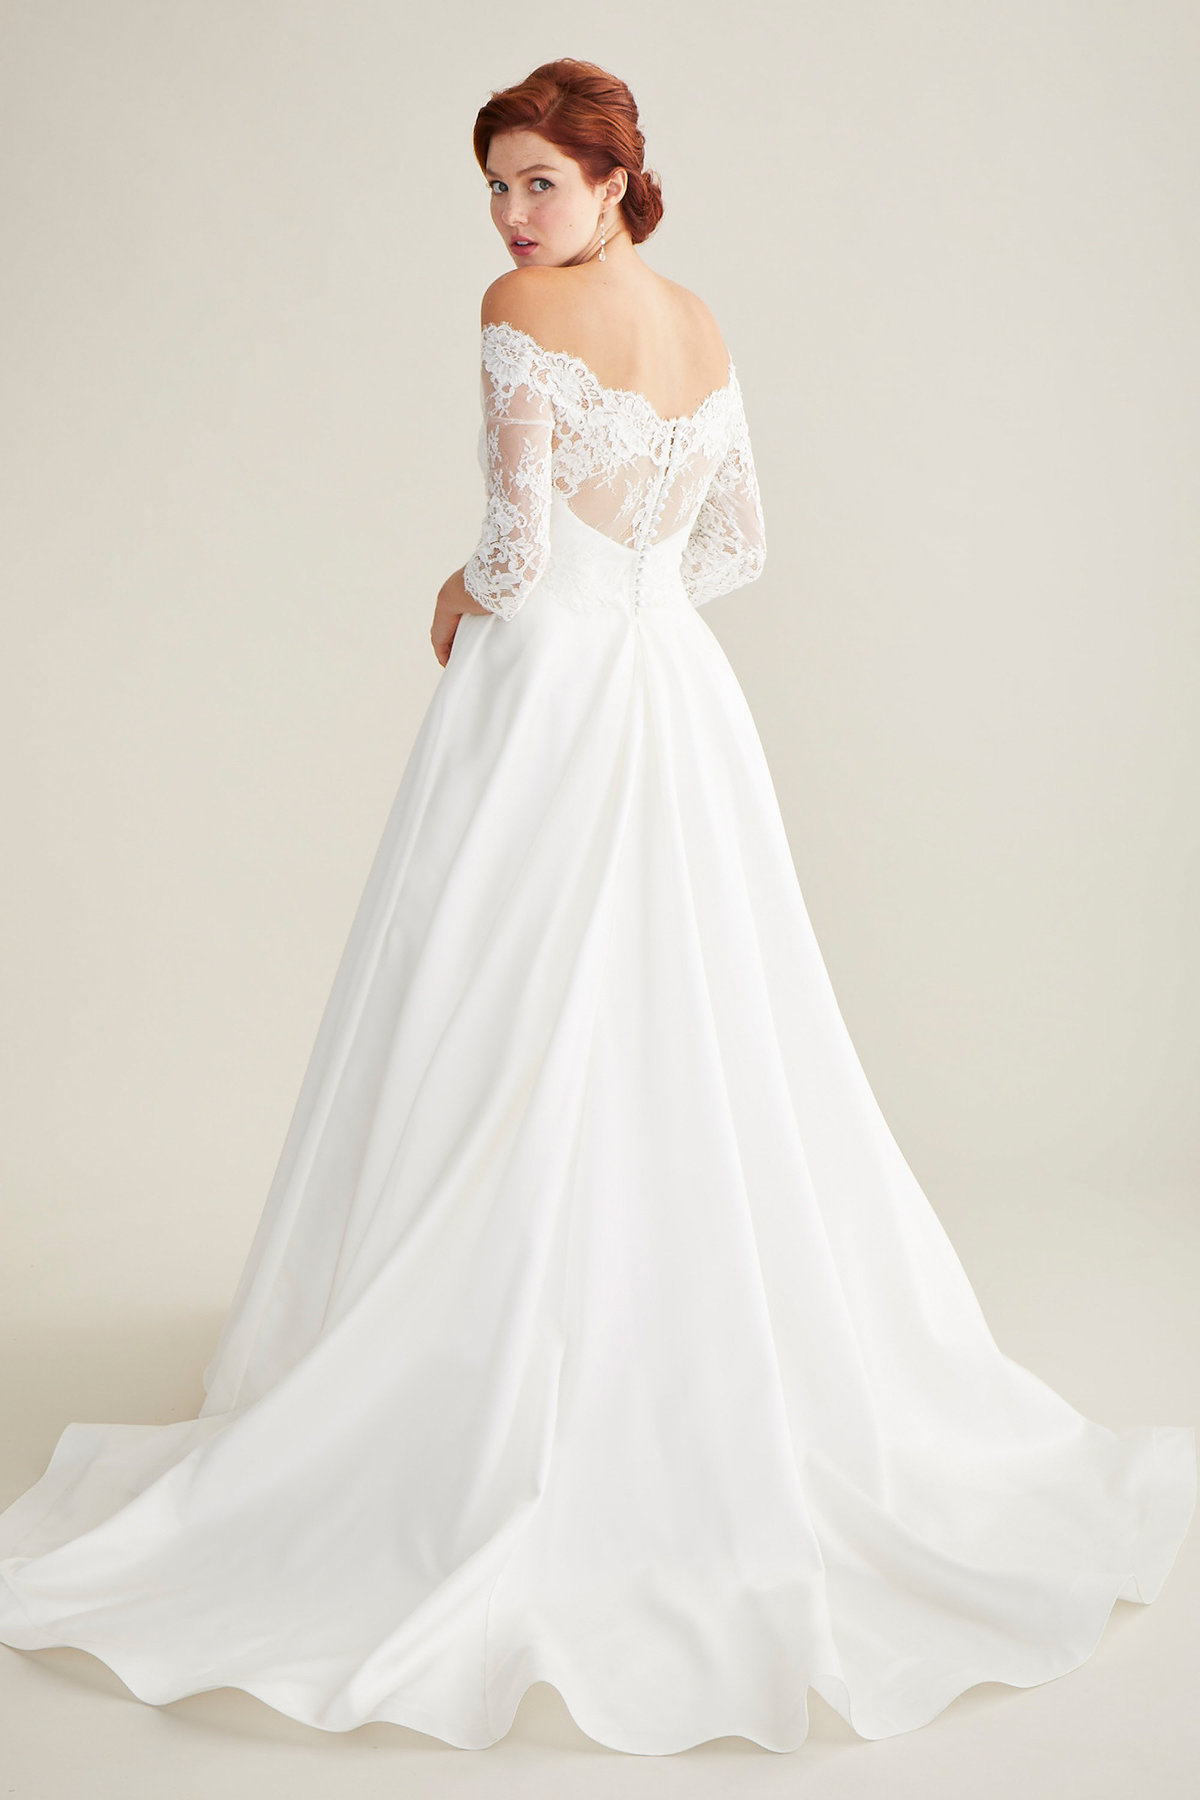 Lea-Ann-Belter-Bridal-Trunk-Show-Jessica-Haley-Bridal-Photo-025